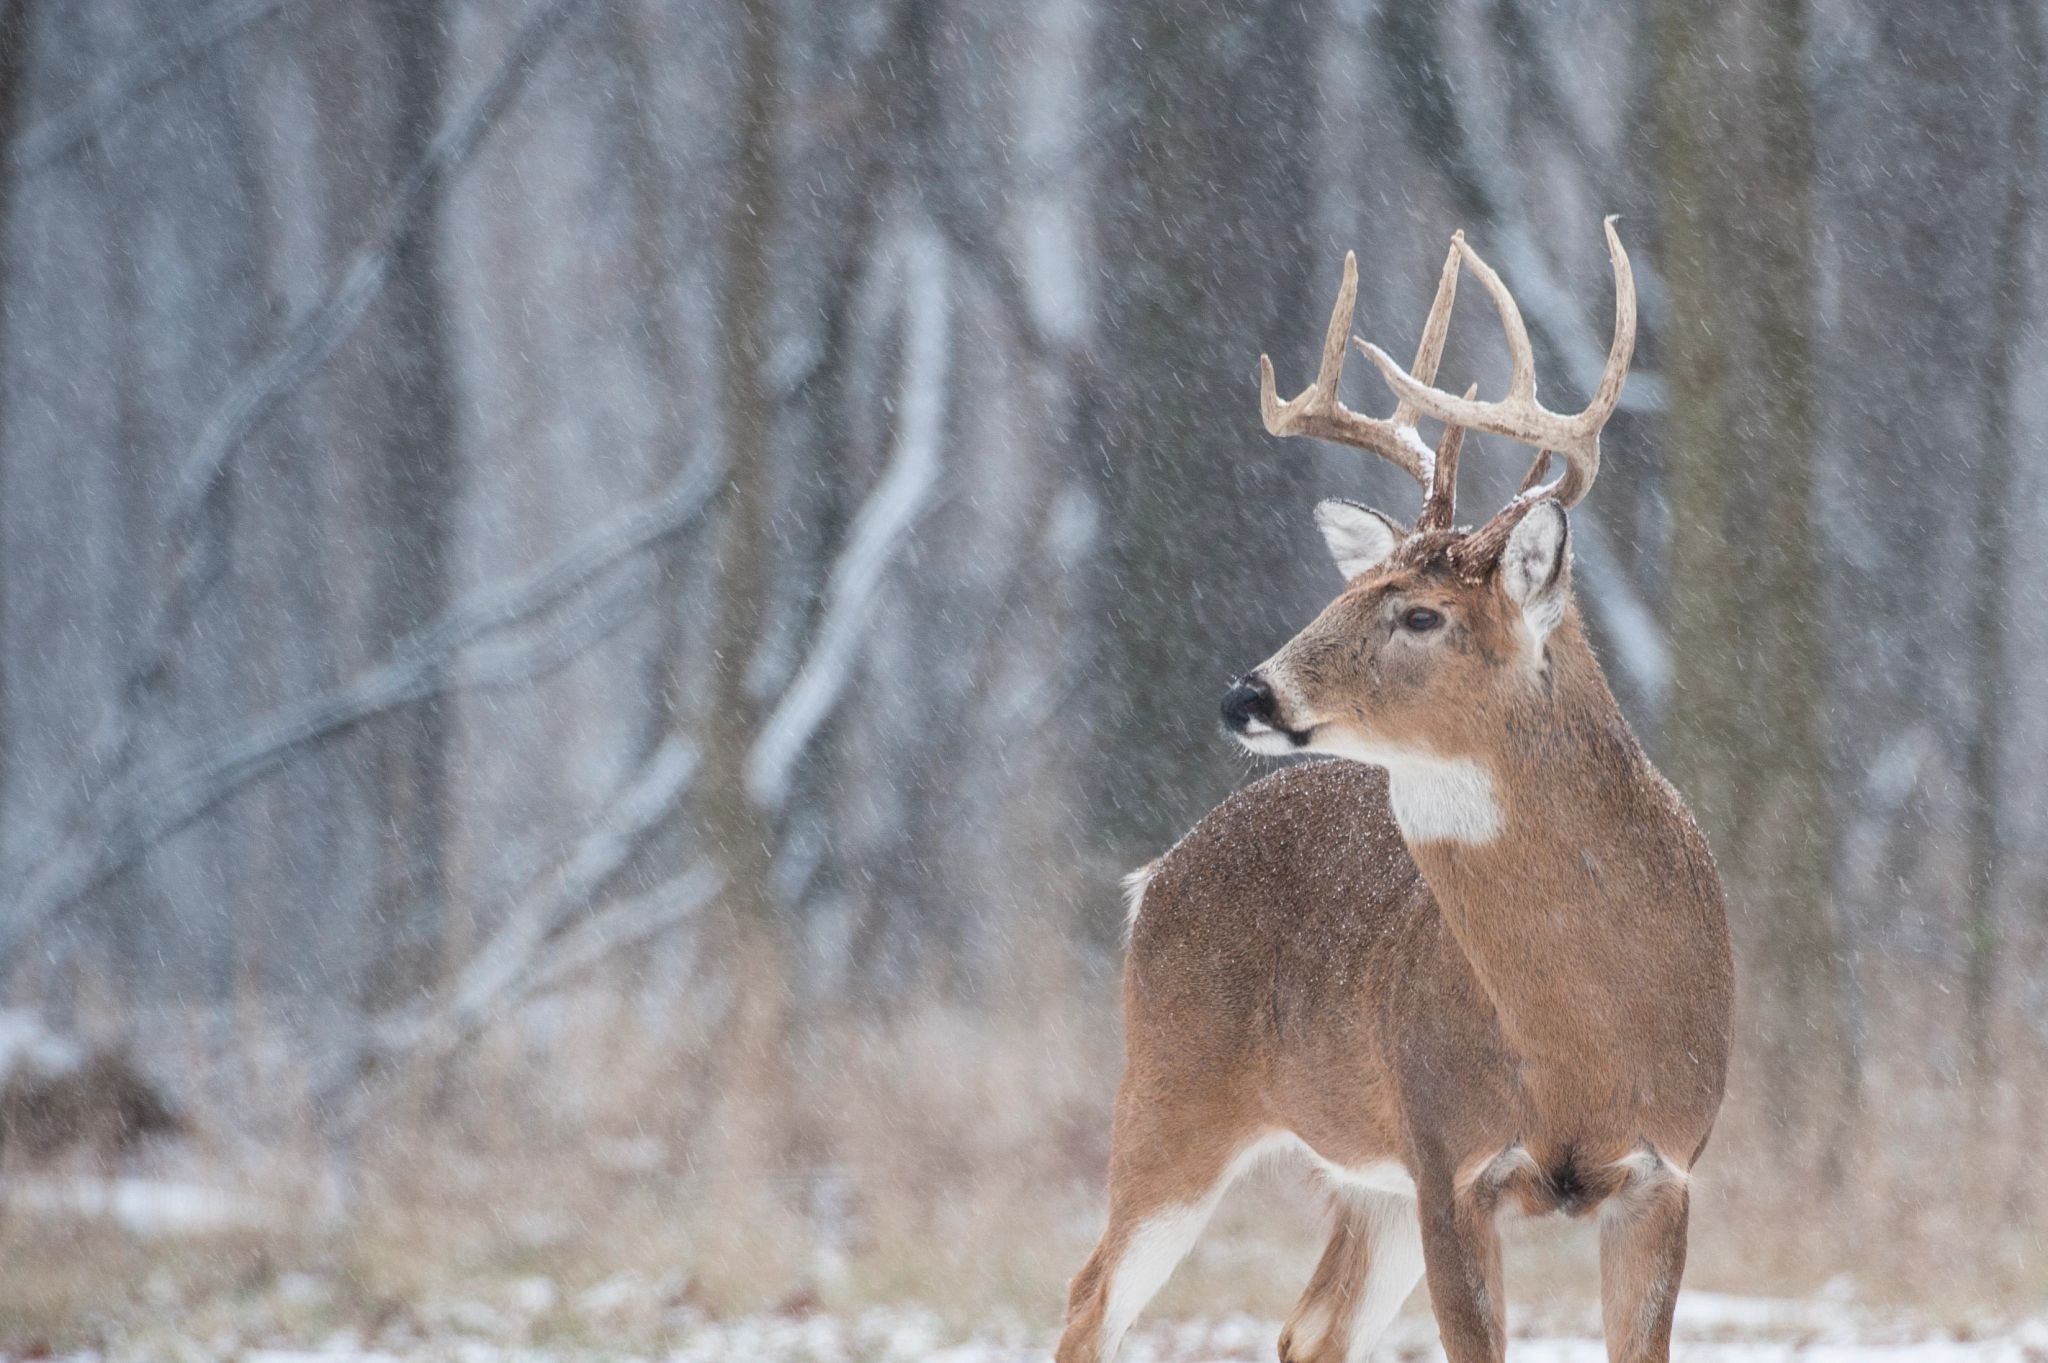 An image of a whitetail buck standing in the snow.